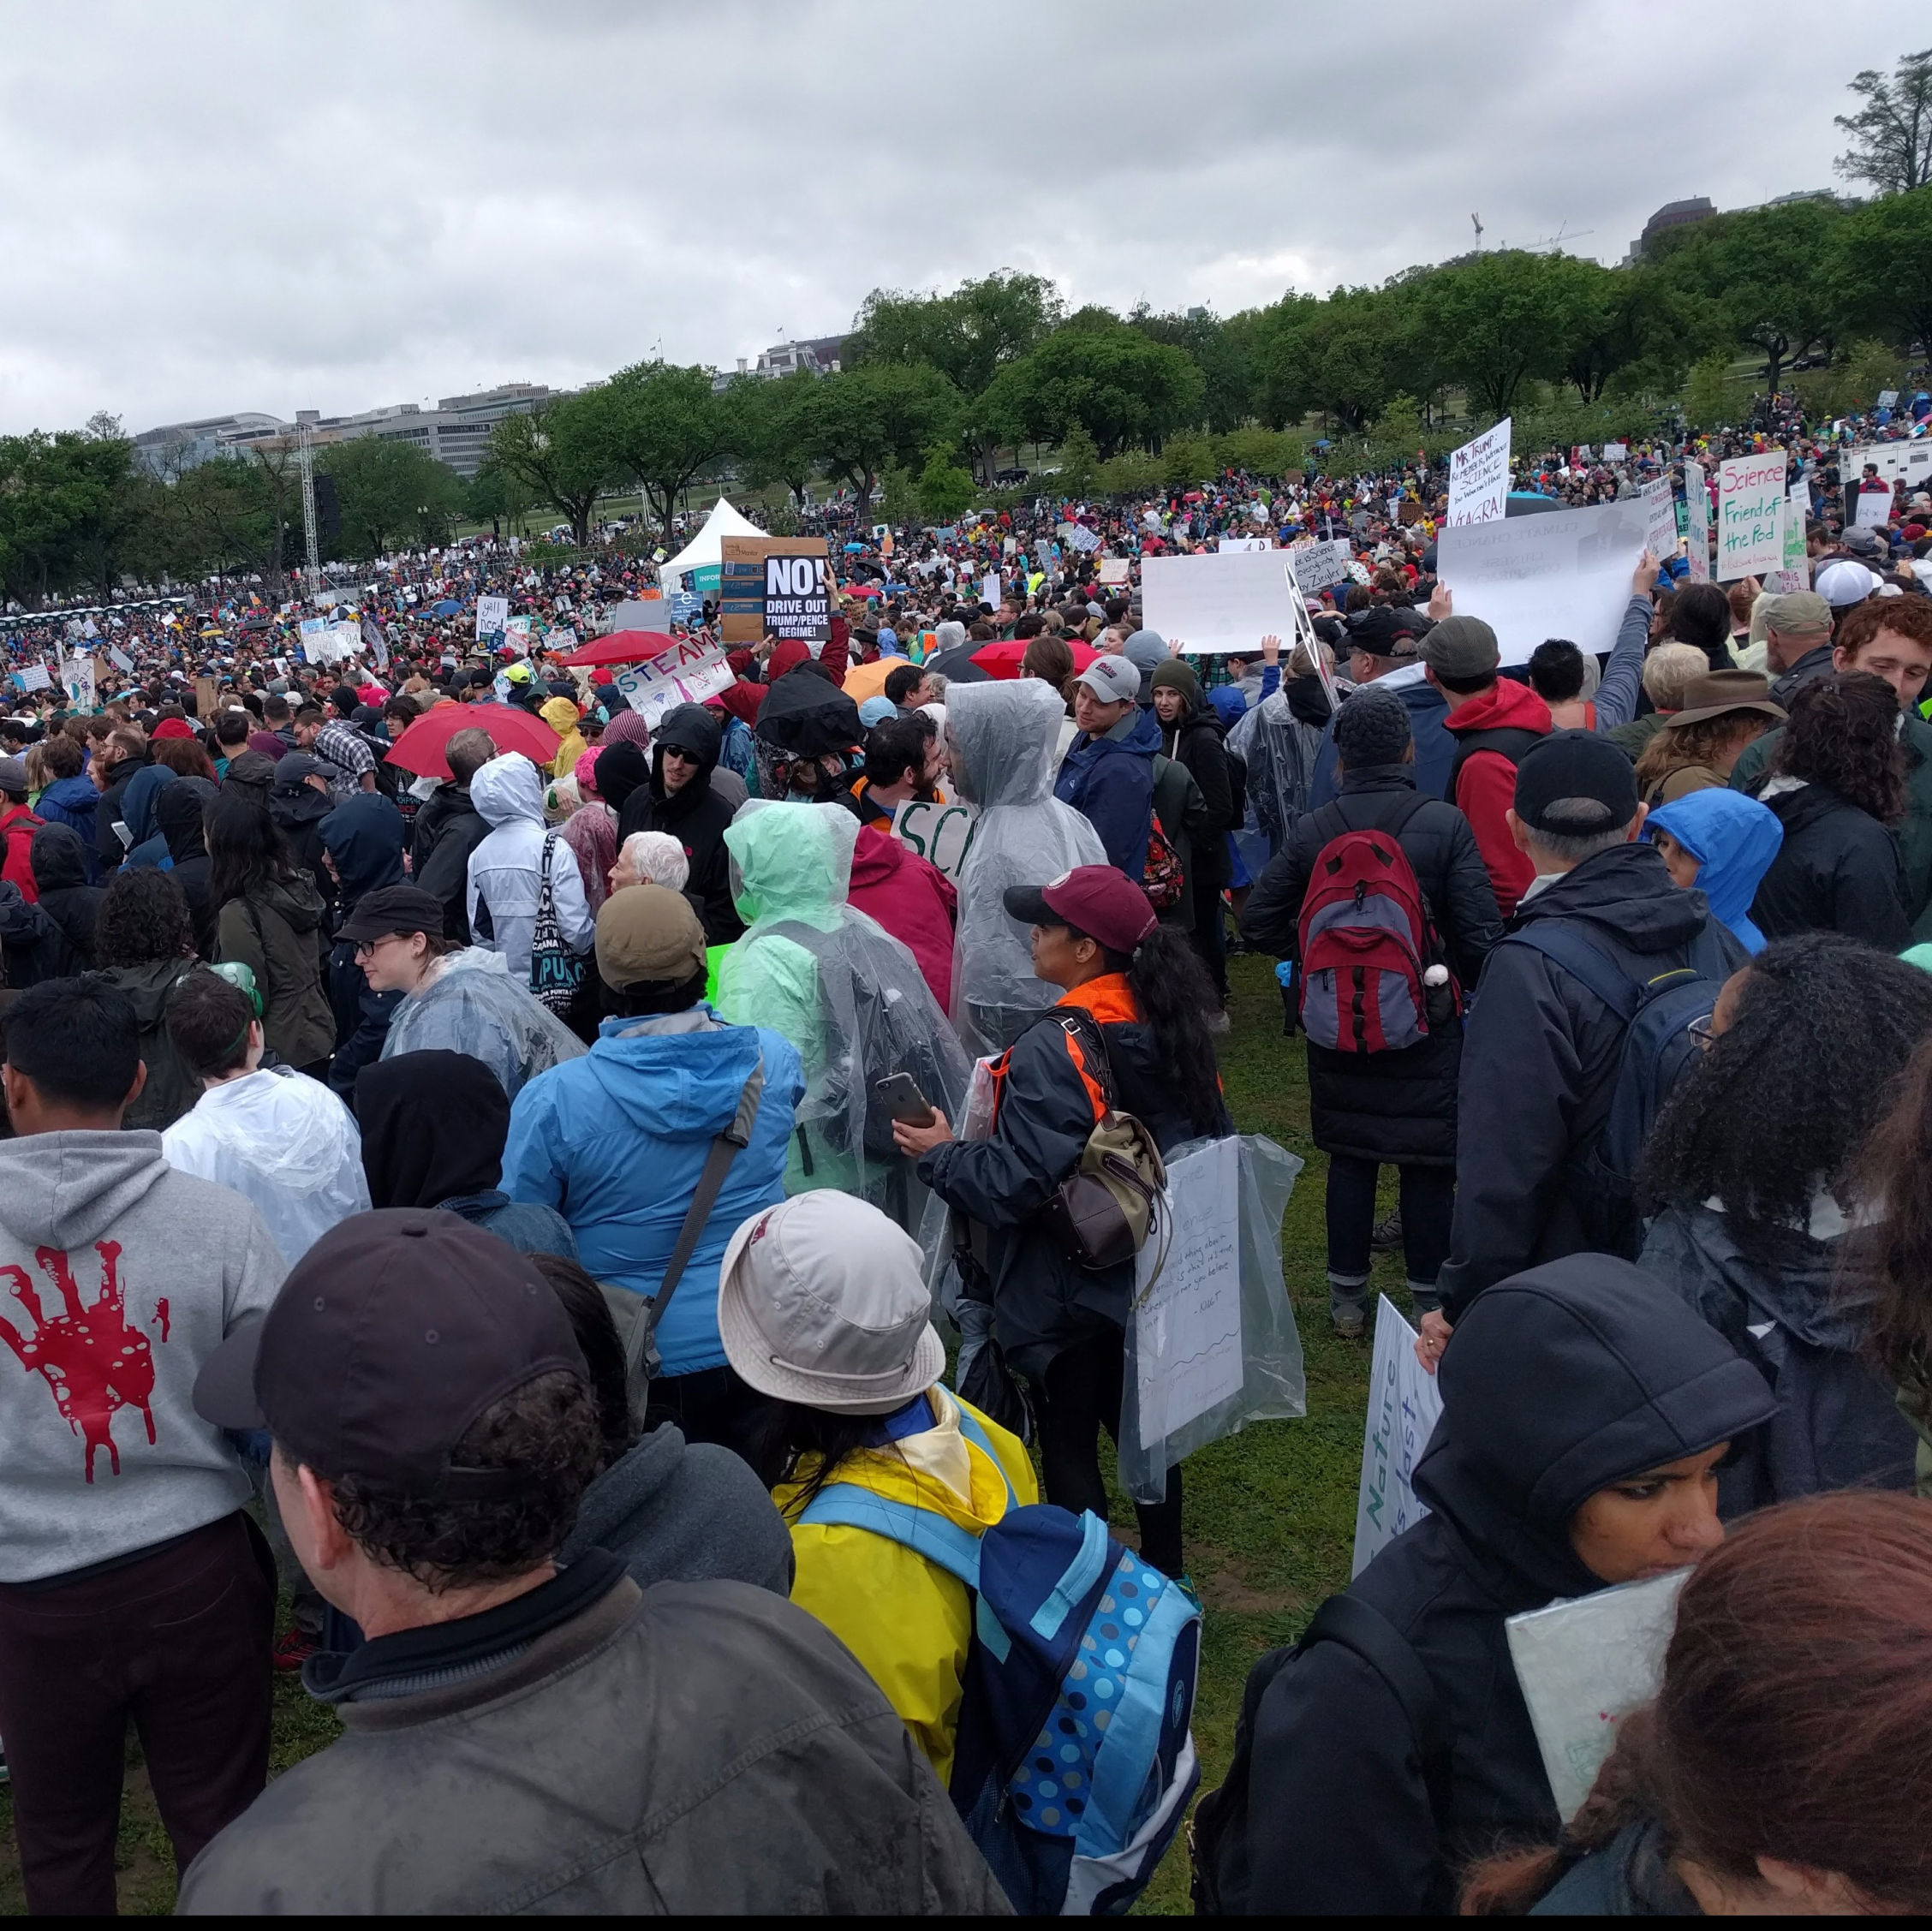 A crowd at a climate march